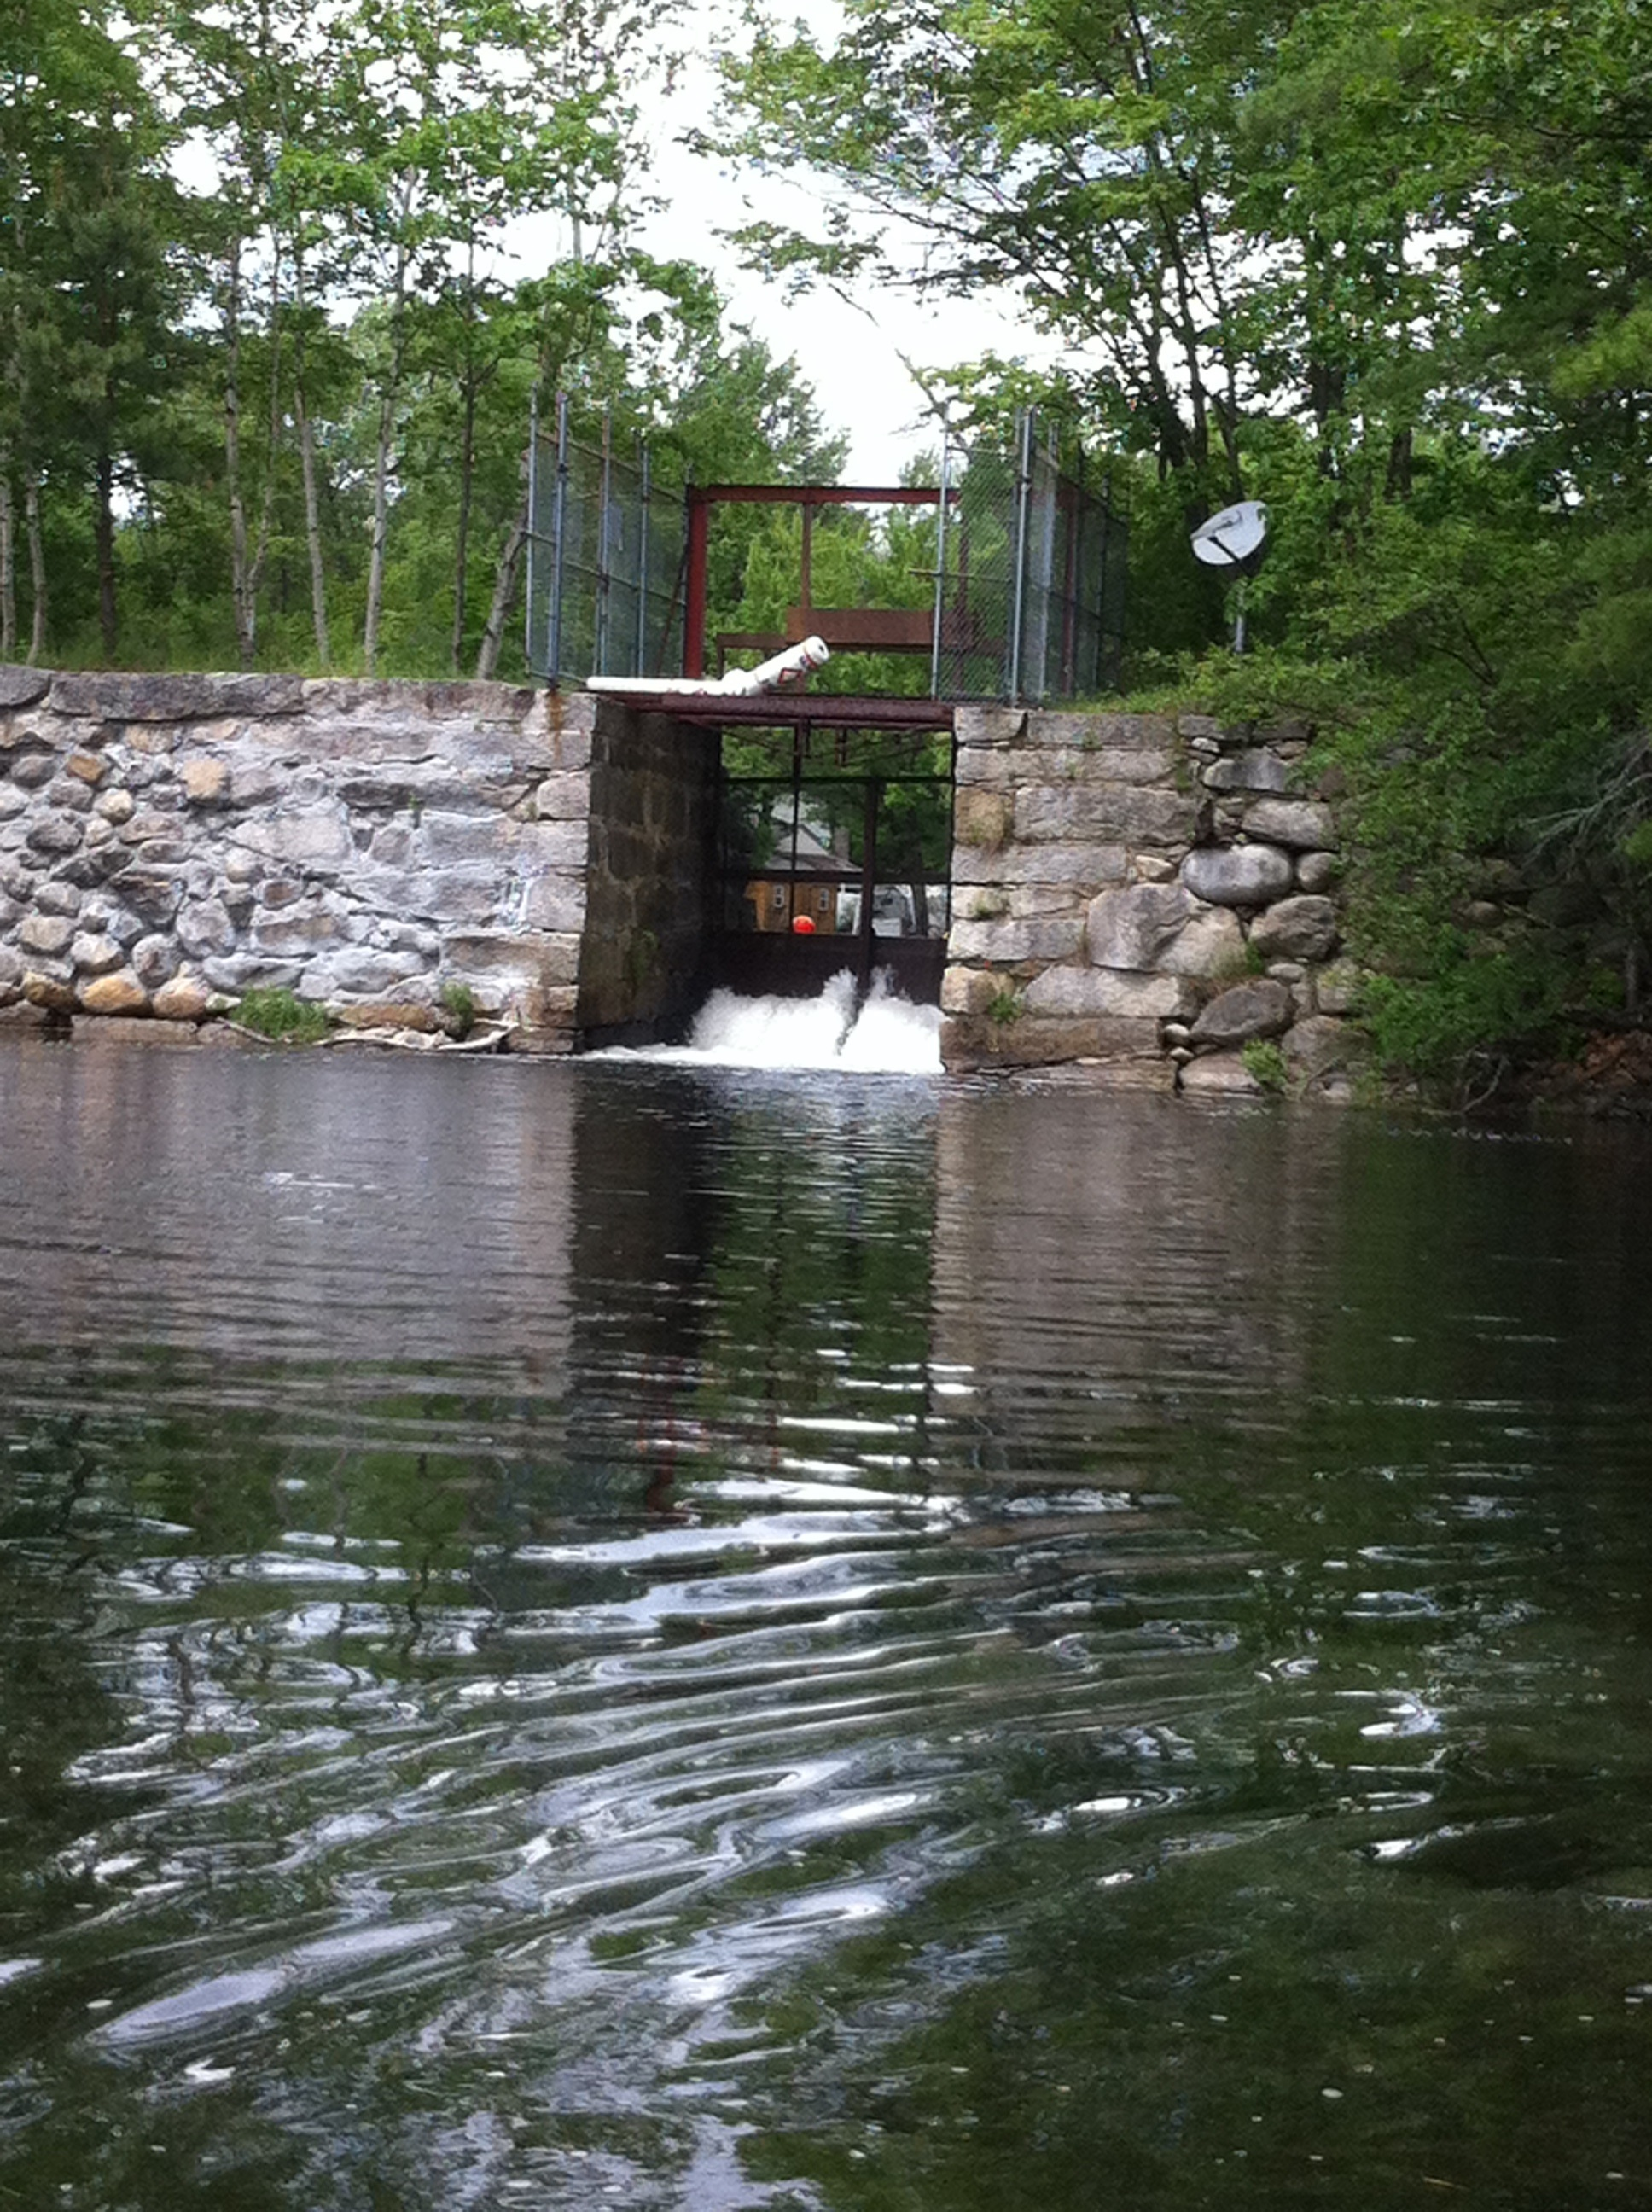 Largemouth bass fishing on mill pond windham maine june for Public fishing access near me